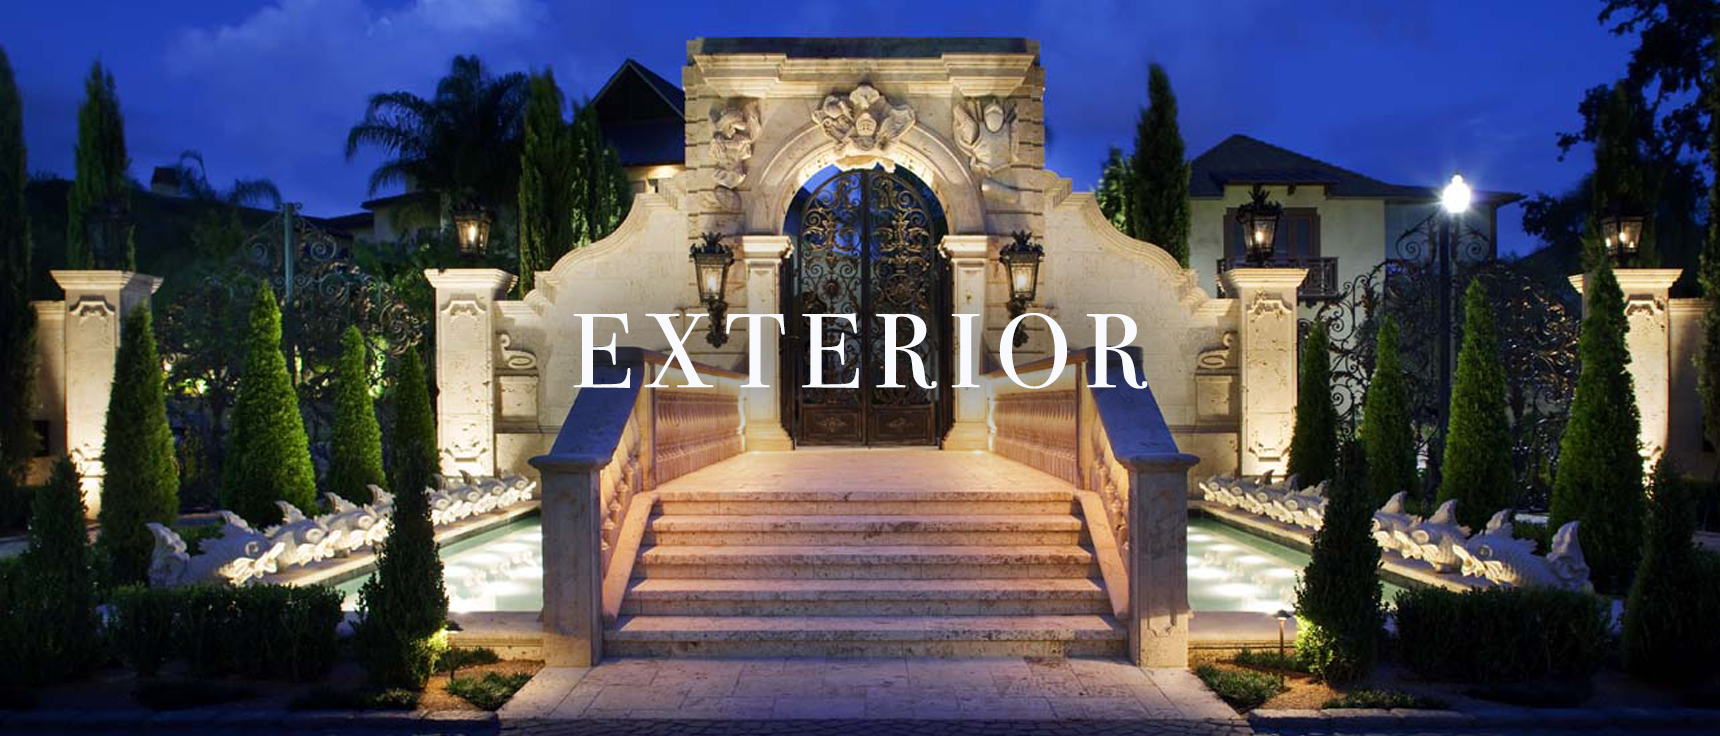 exterior-thumbnail-posh-exclusive-interiors.jpg